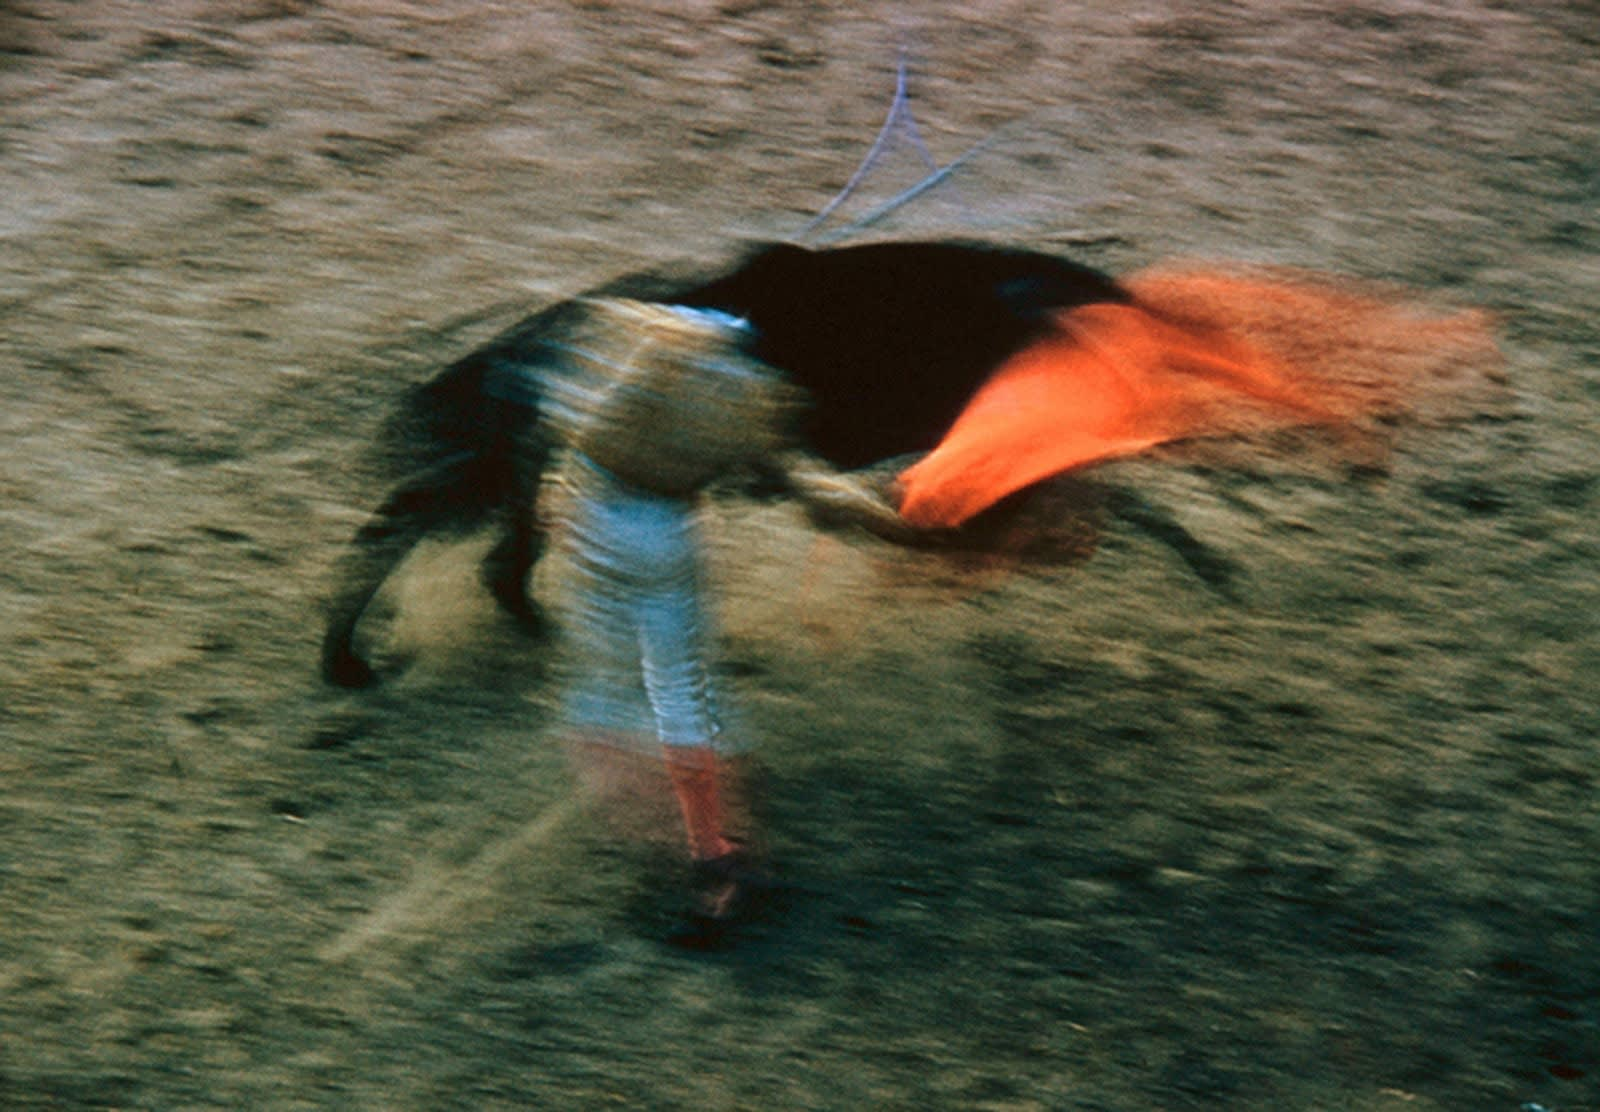 Ernst Haas, Bullfight, Pamplona, Spain, 1956